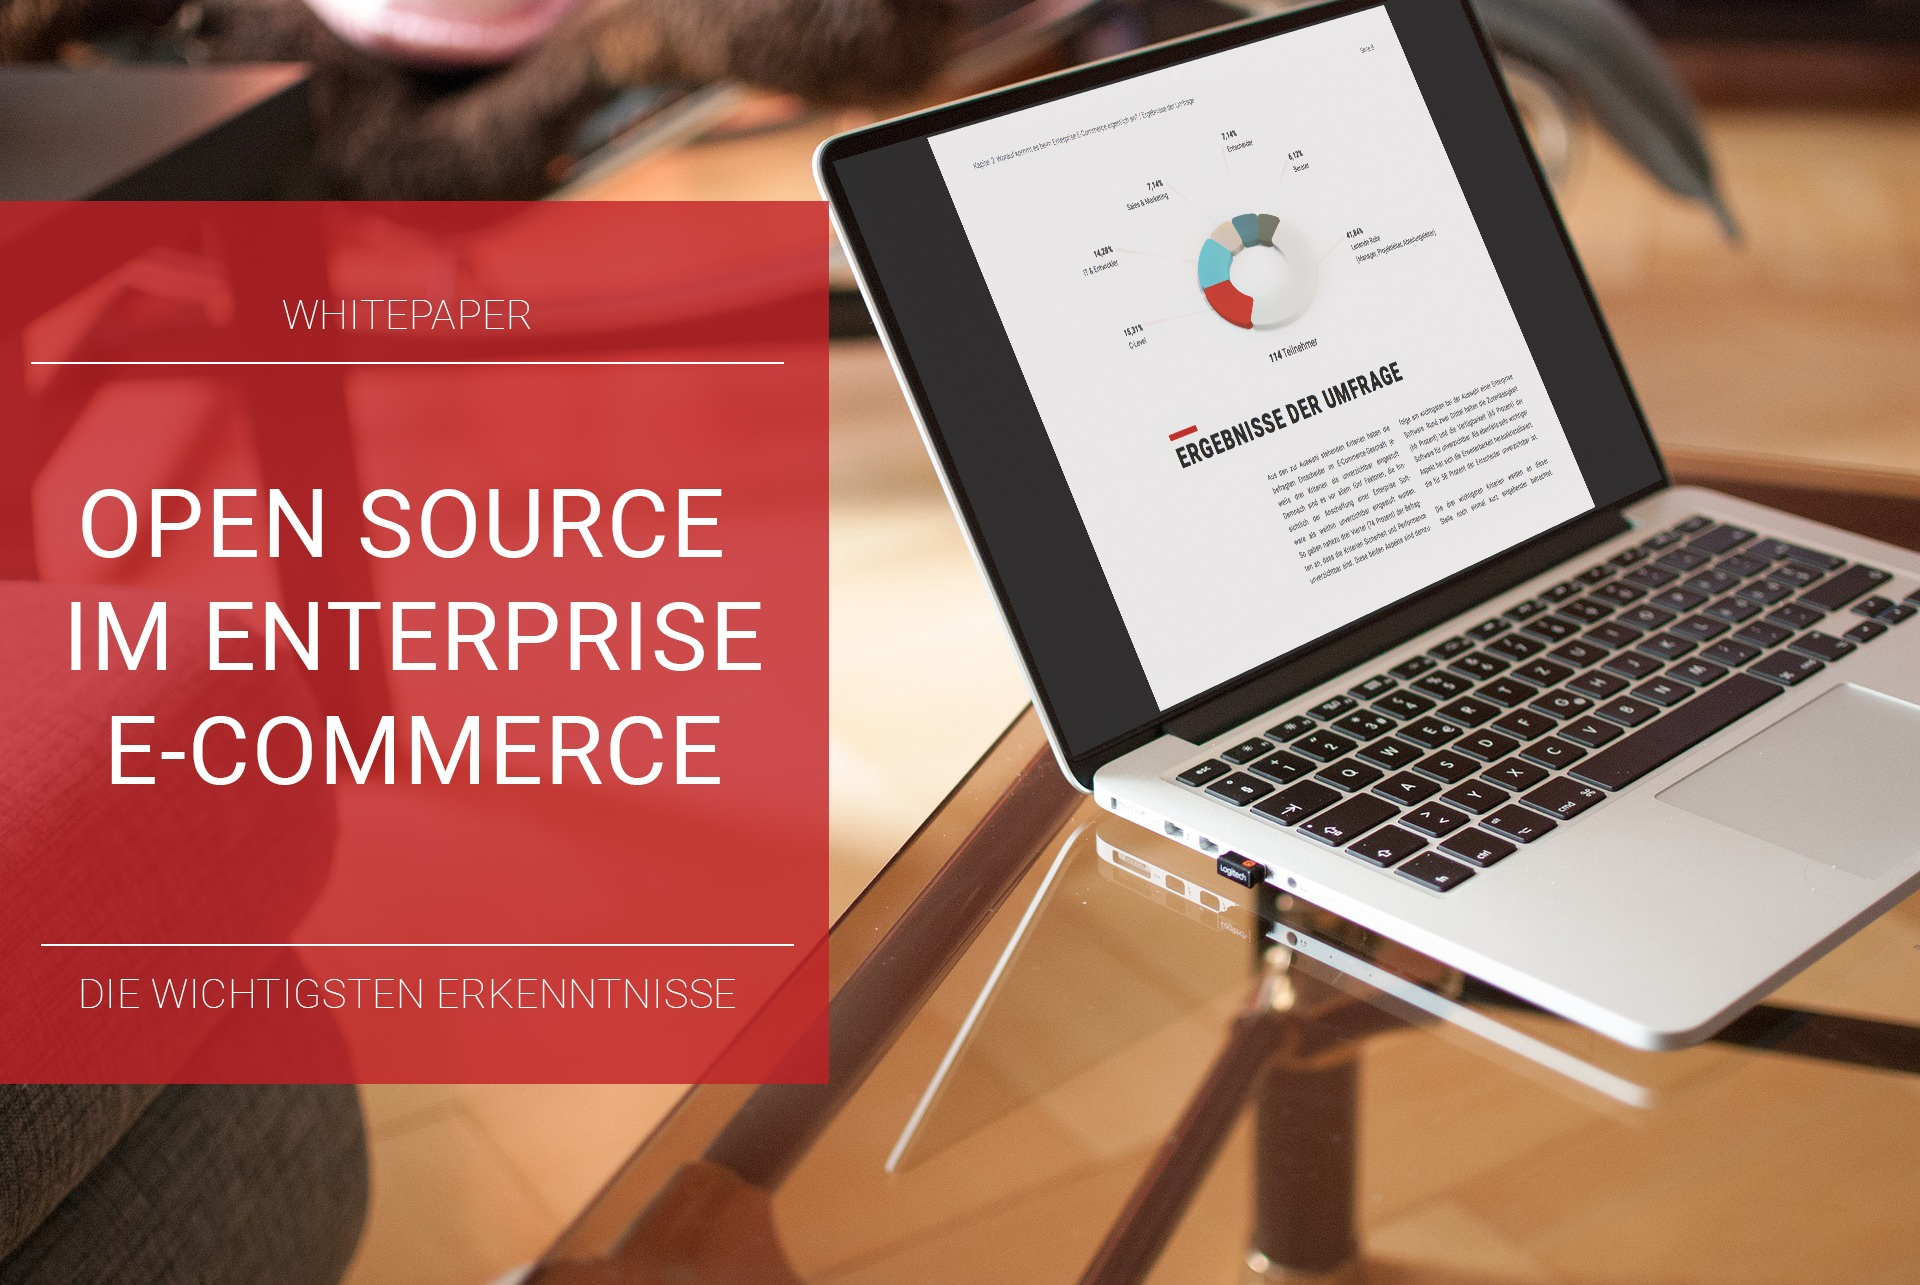 Open Source im Enterprise E-Commerce: Eine Chance für alle